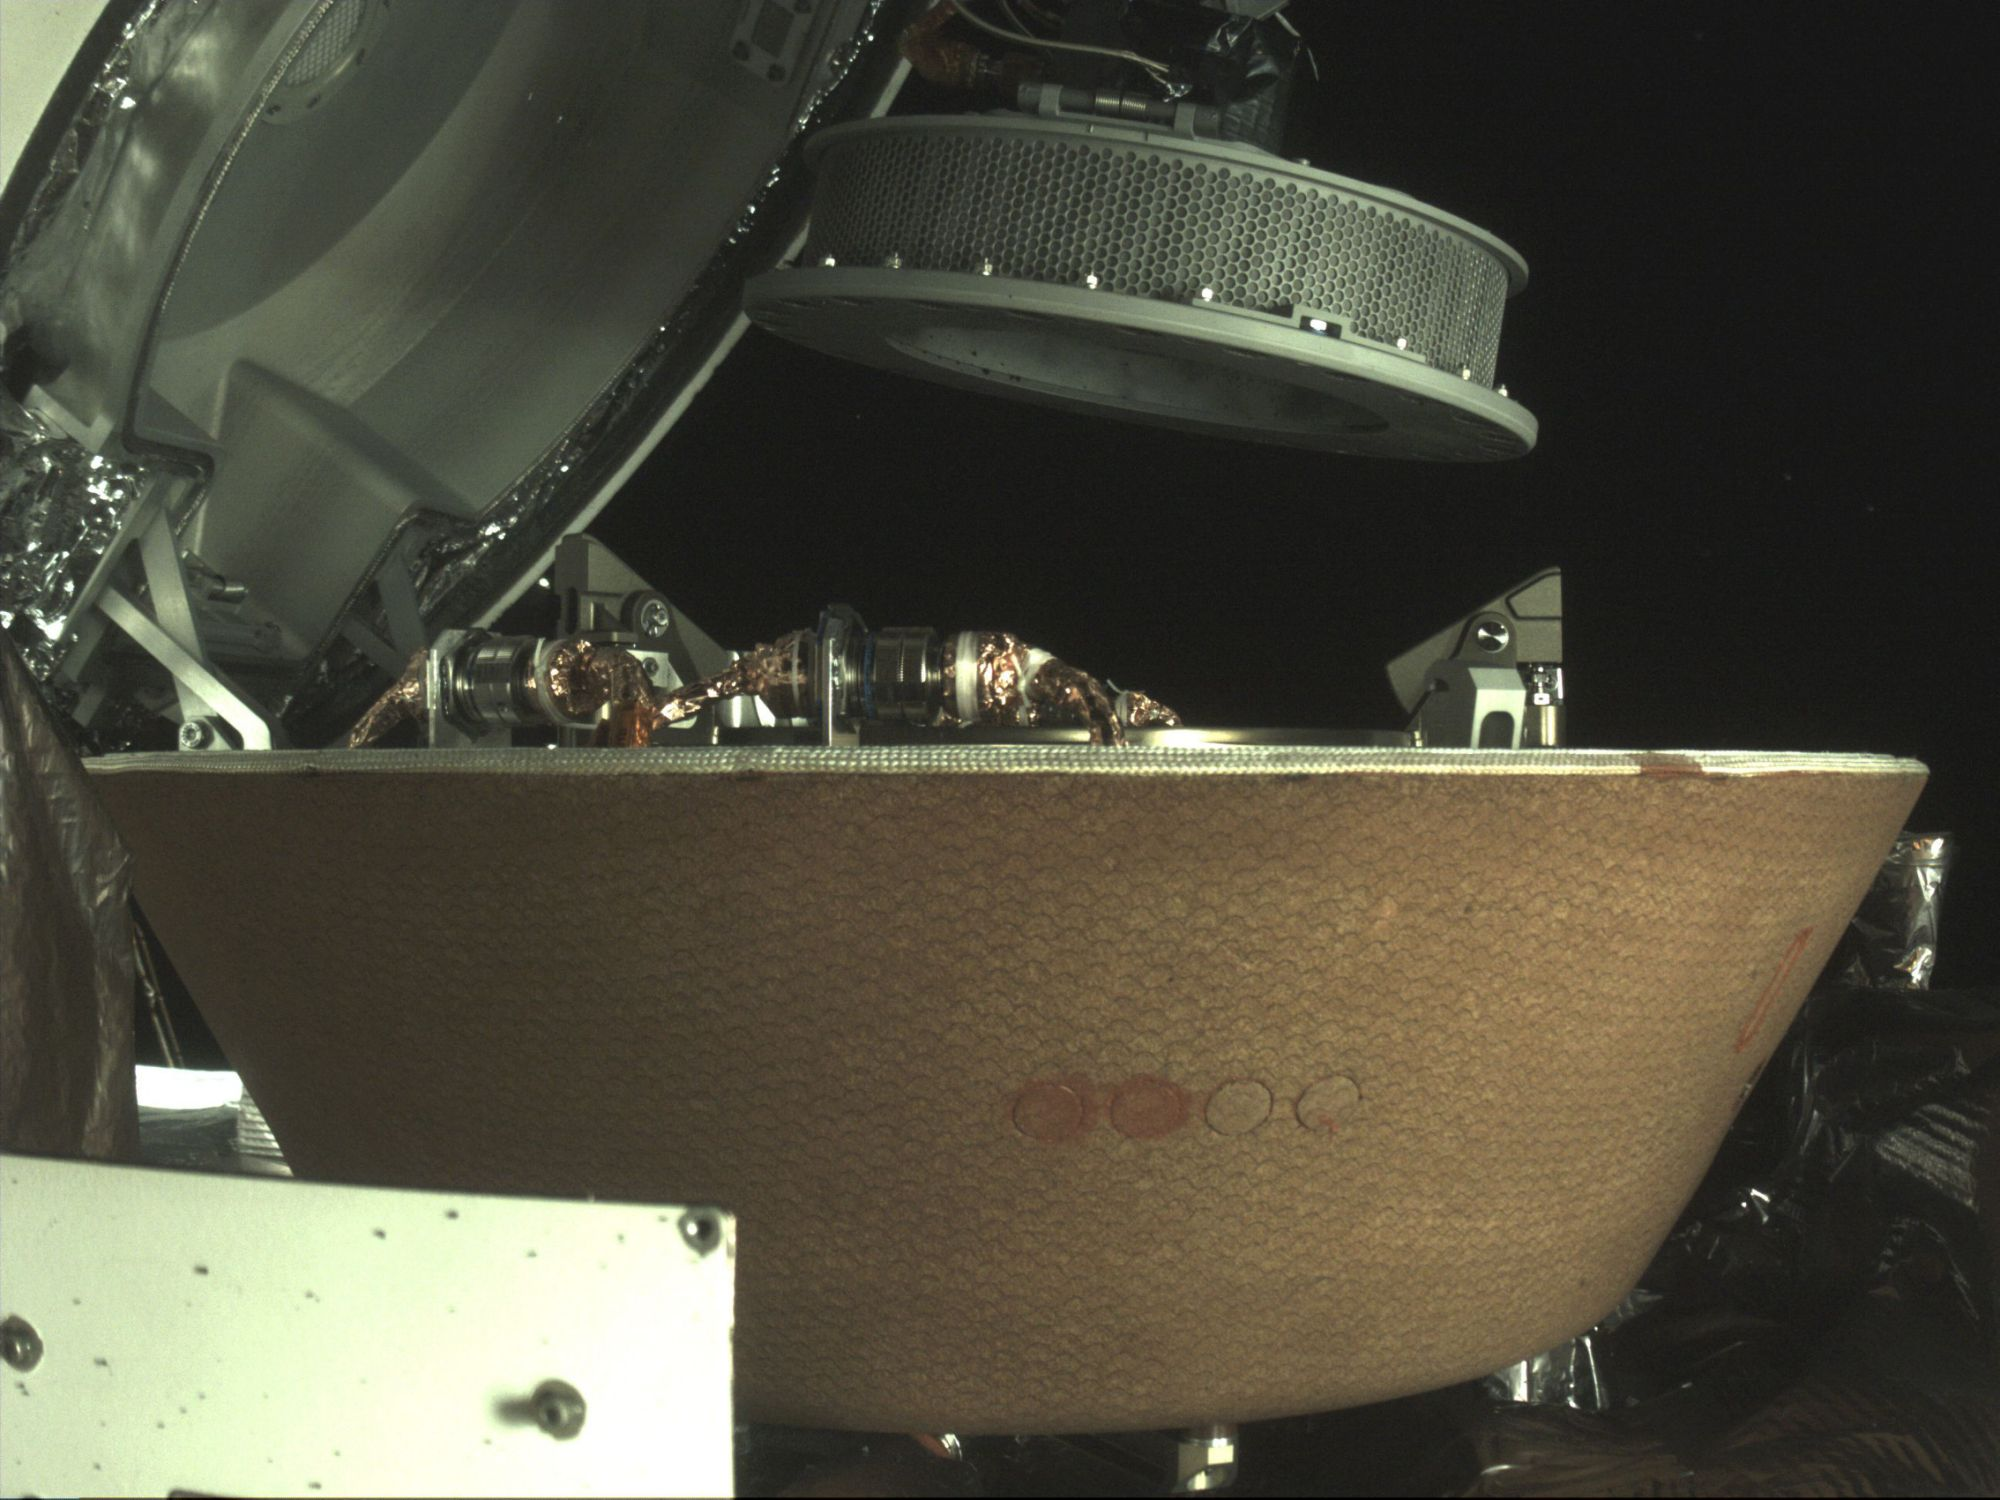 Asteroid specimens were embedded in the capsule to return to Earth